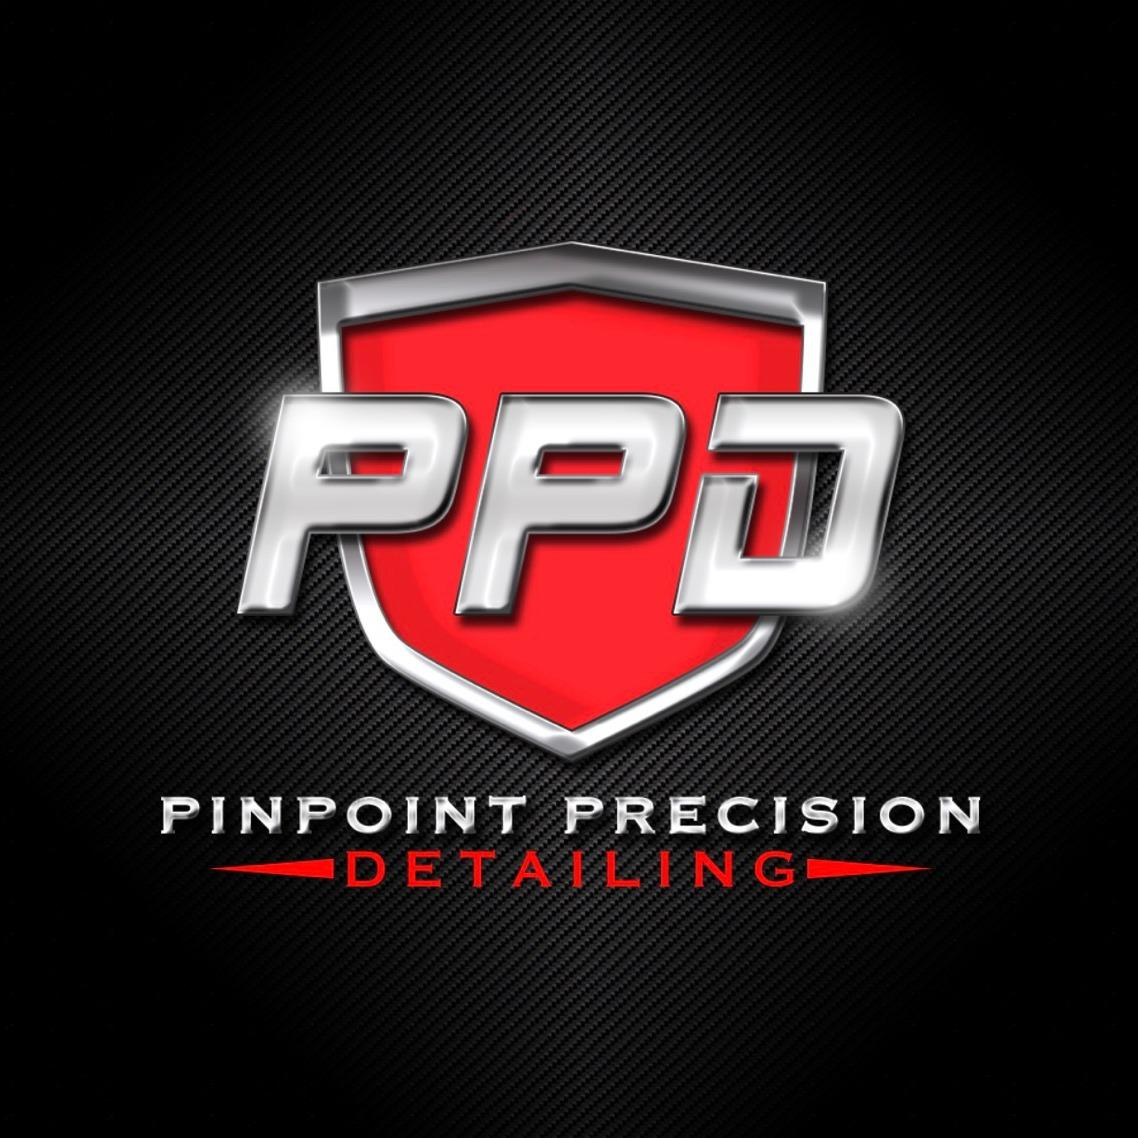 Pinpoint Precision Detailing